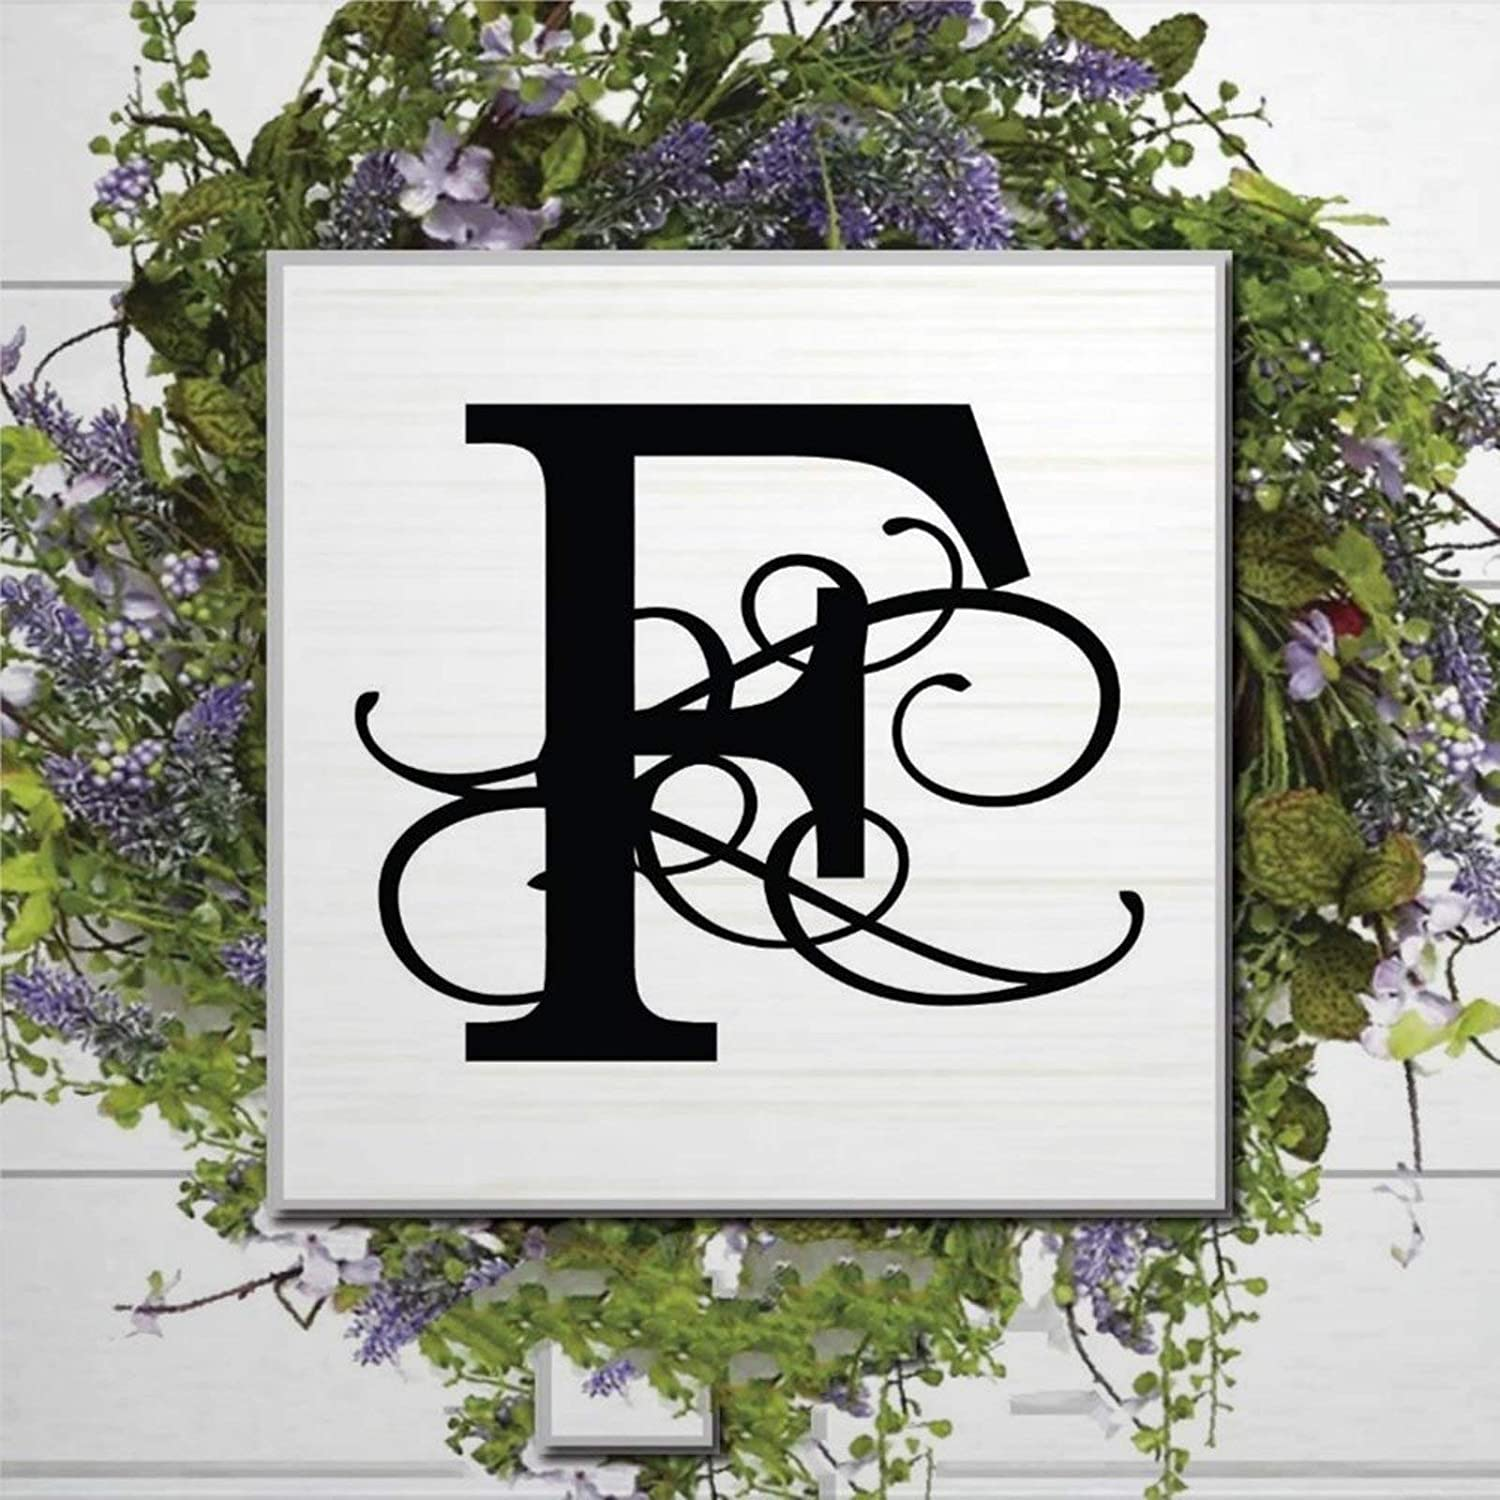 DONL9BAUER F Monogram Wood Sign,Wedding Letter Wood Wall Decor Sign, Farmhouse Wooden Plaque Art for Home,Office,Gardens, Coffee Shop,Porch, Gallery Wall.